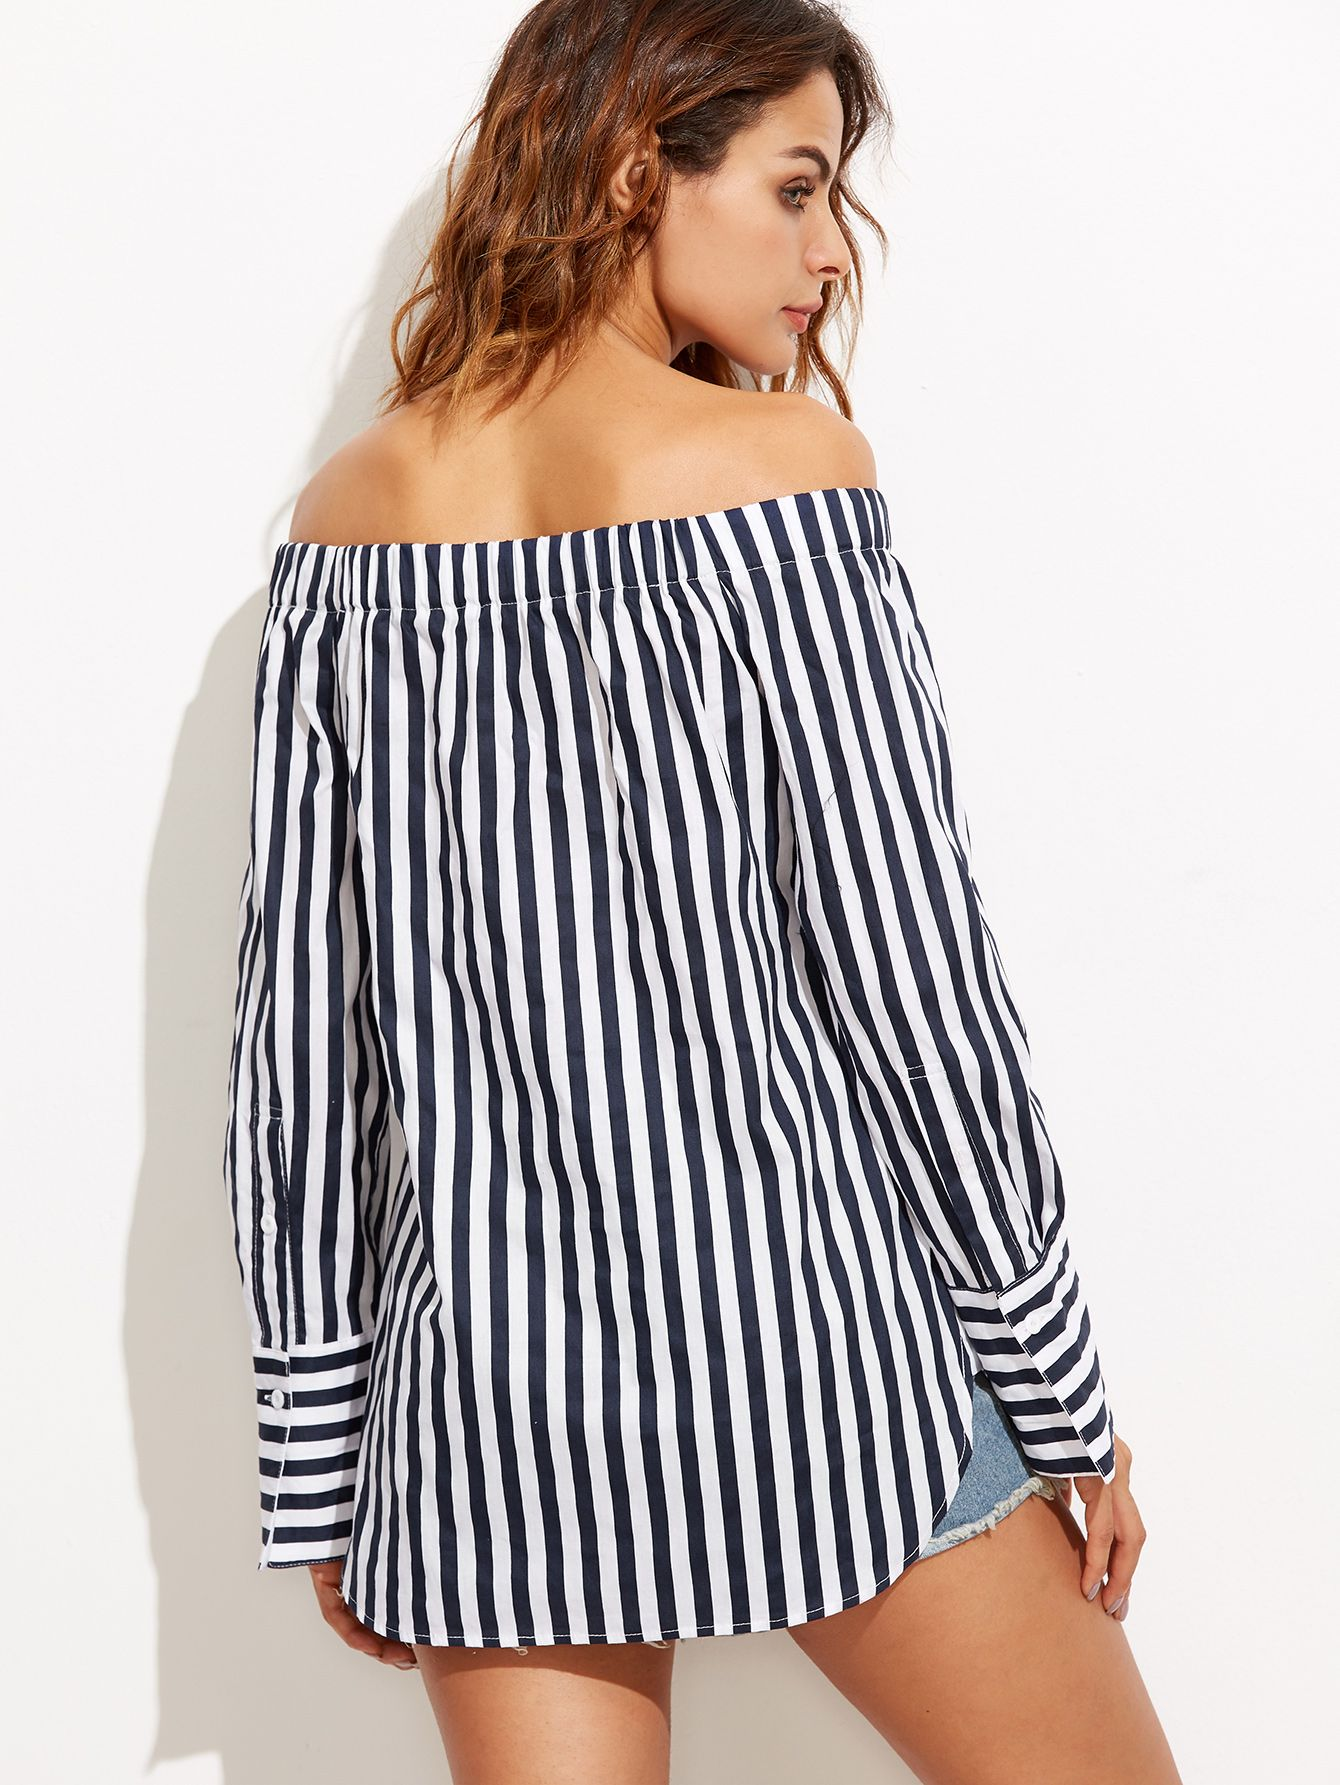 808db2b45114 Navy And White Vertical Striped Off The Shoulder Blouse